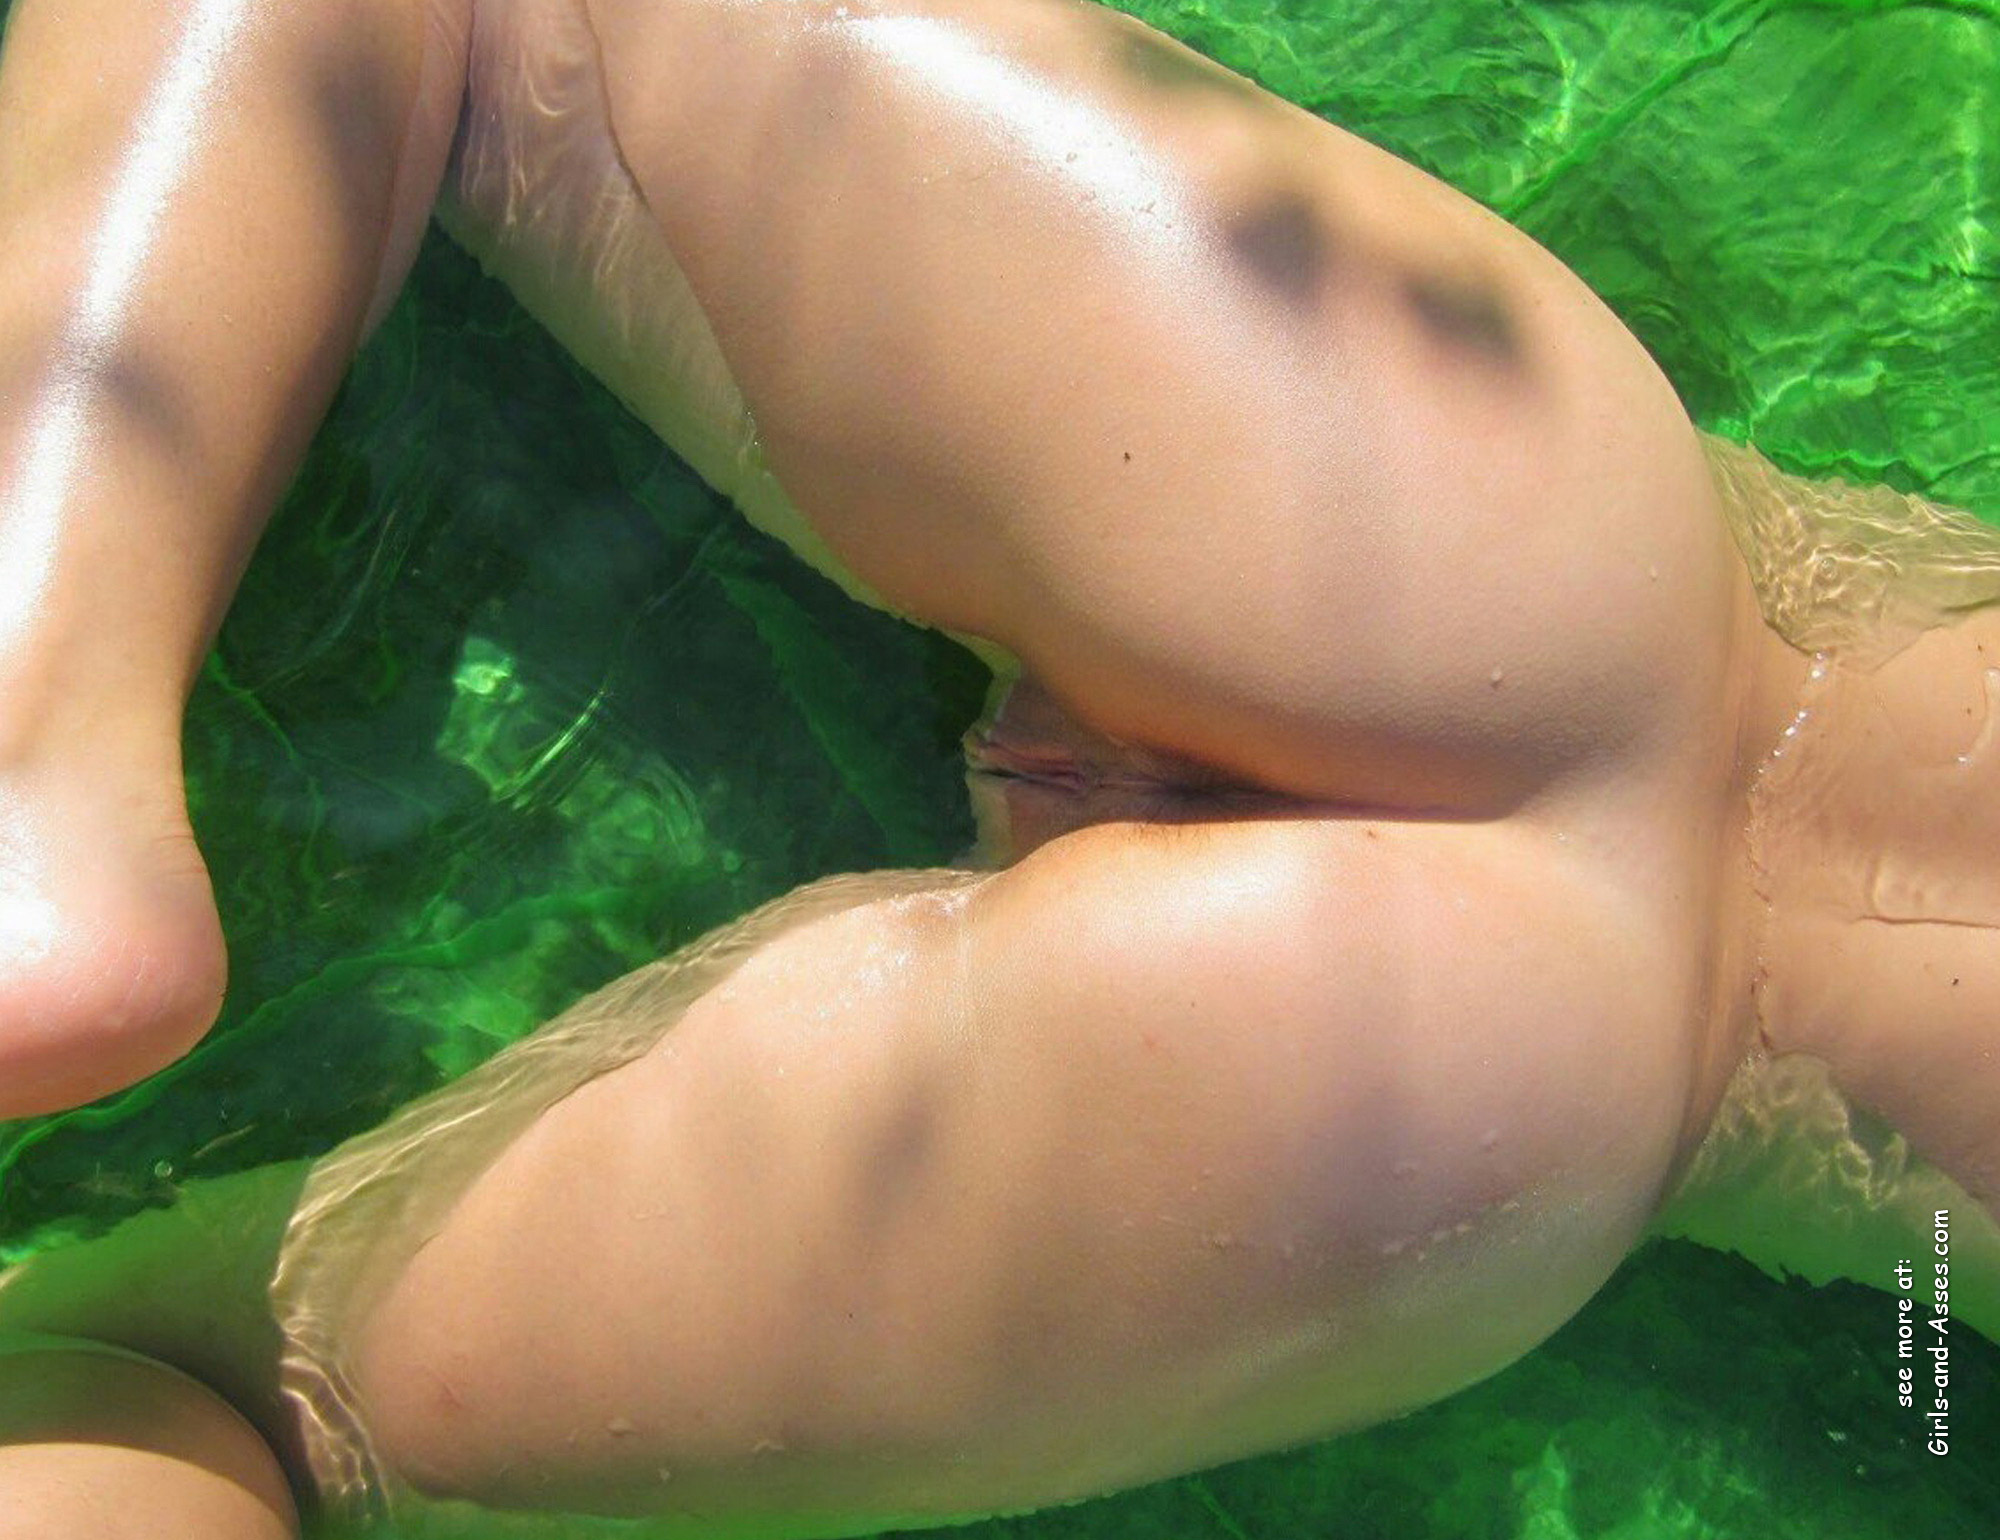 beautiful naked ass by the pool photo 01858